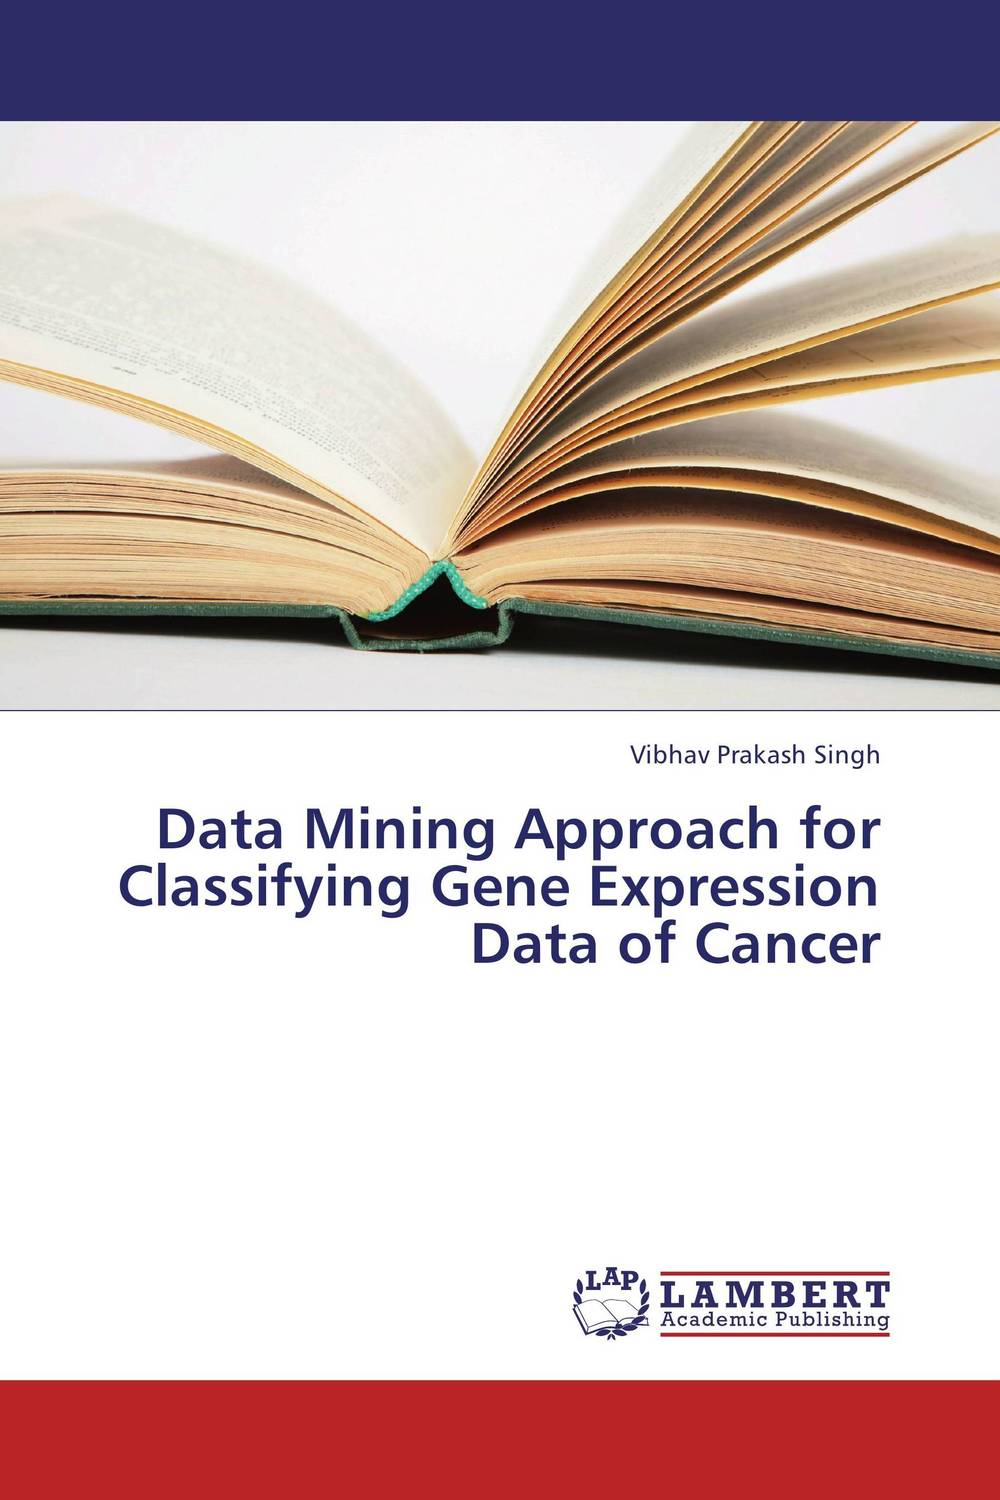 Data Mining Approach for Classifying Gene Expression Data of Cancer data and information security using hylemetric approach